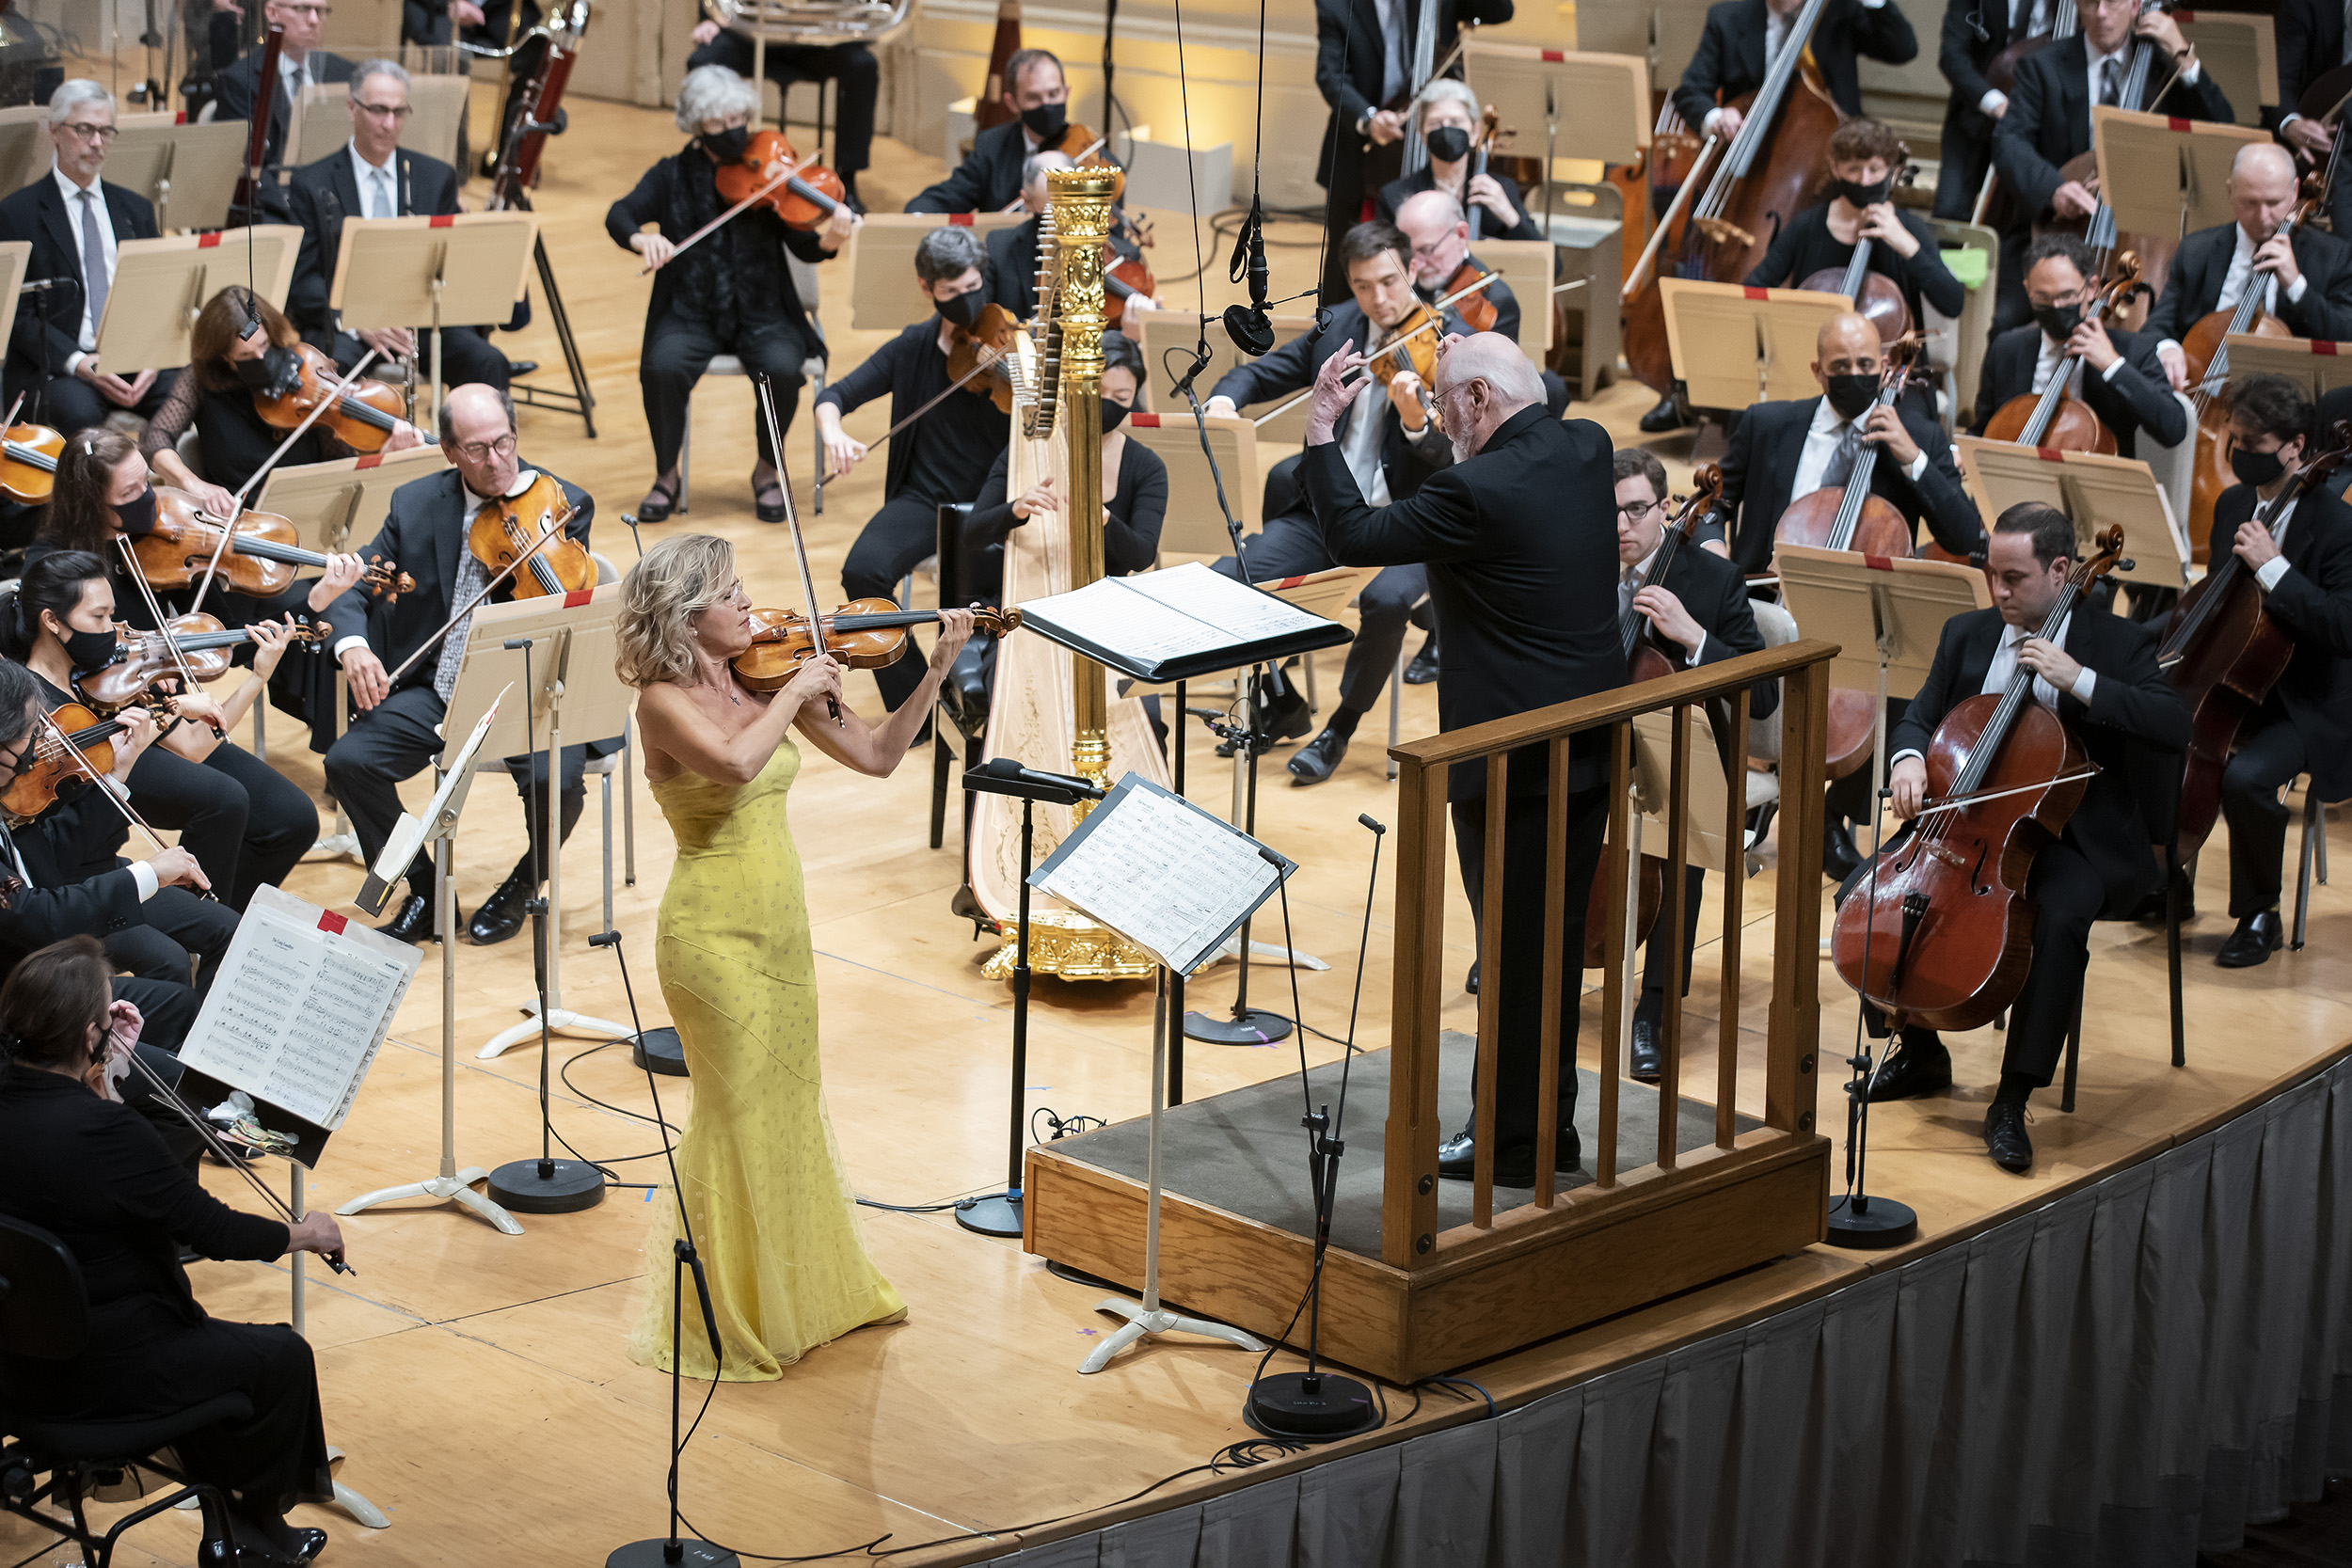 Anne-Sophie Mutter performs John Williams film score arrangements with the composer conducting at Symphony Hall on Sunday, Oct. 3, 2021. (Courtesy Winslow Townson)